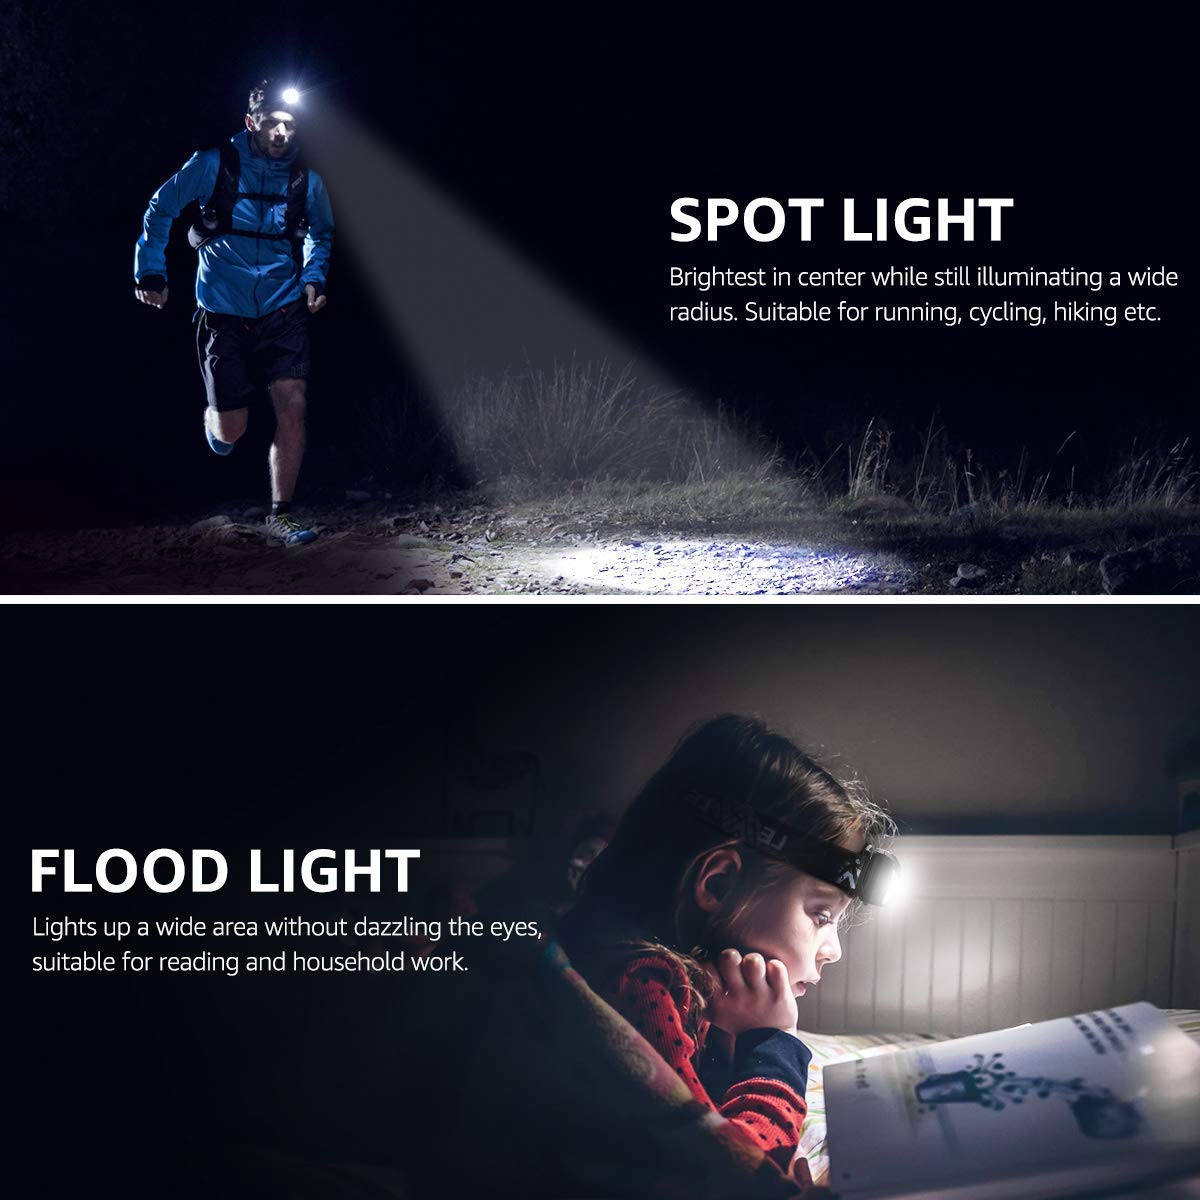 LED Headlamp Flashlights Perfect for Adults and Kids Running Rechargeable Headlights with 6 Modes Camping Lightweight and Comfortable Super Bright Battery and USB Cable Included Hiking and More